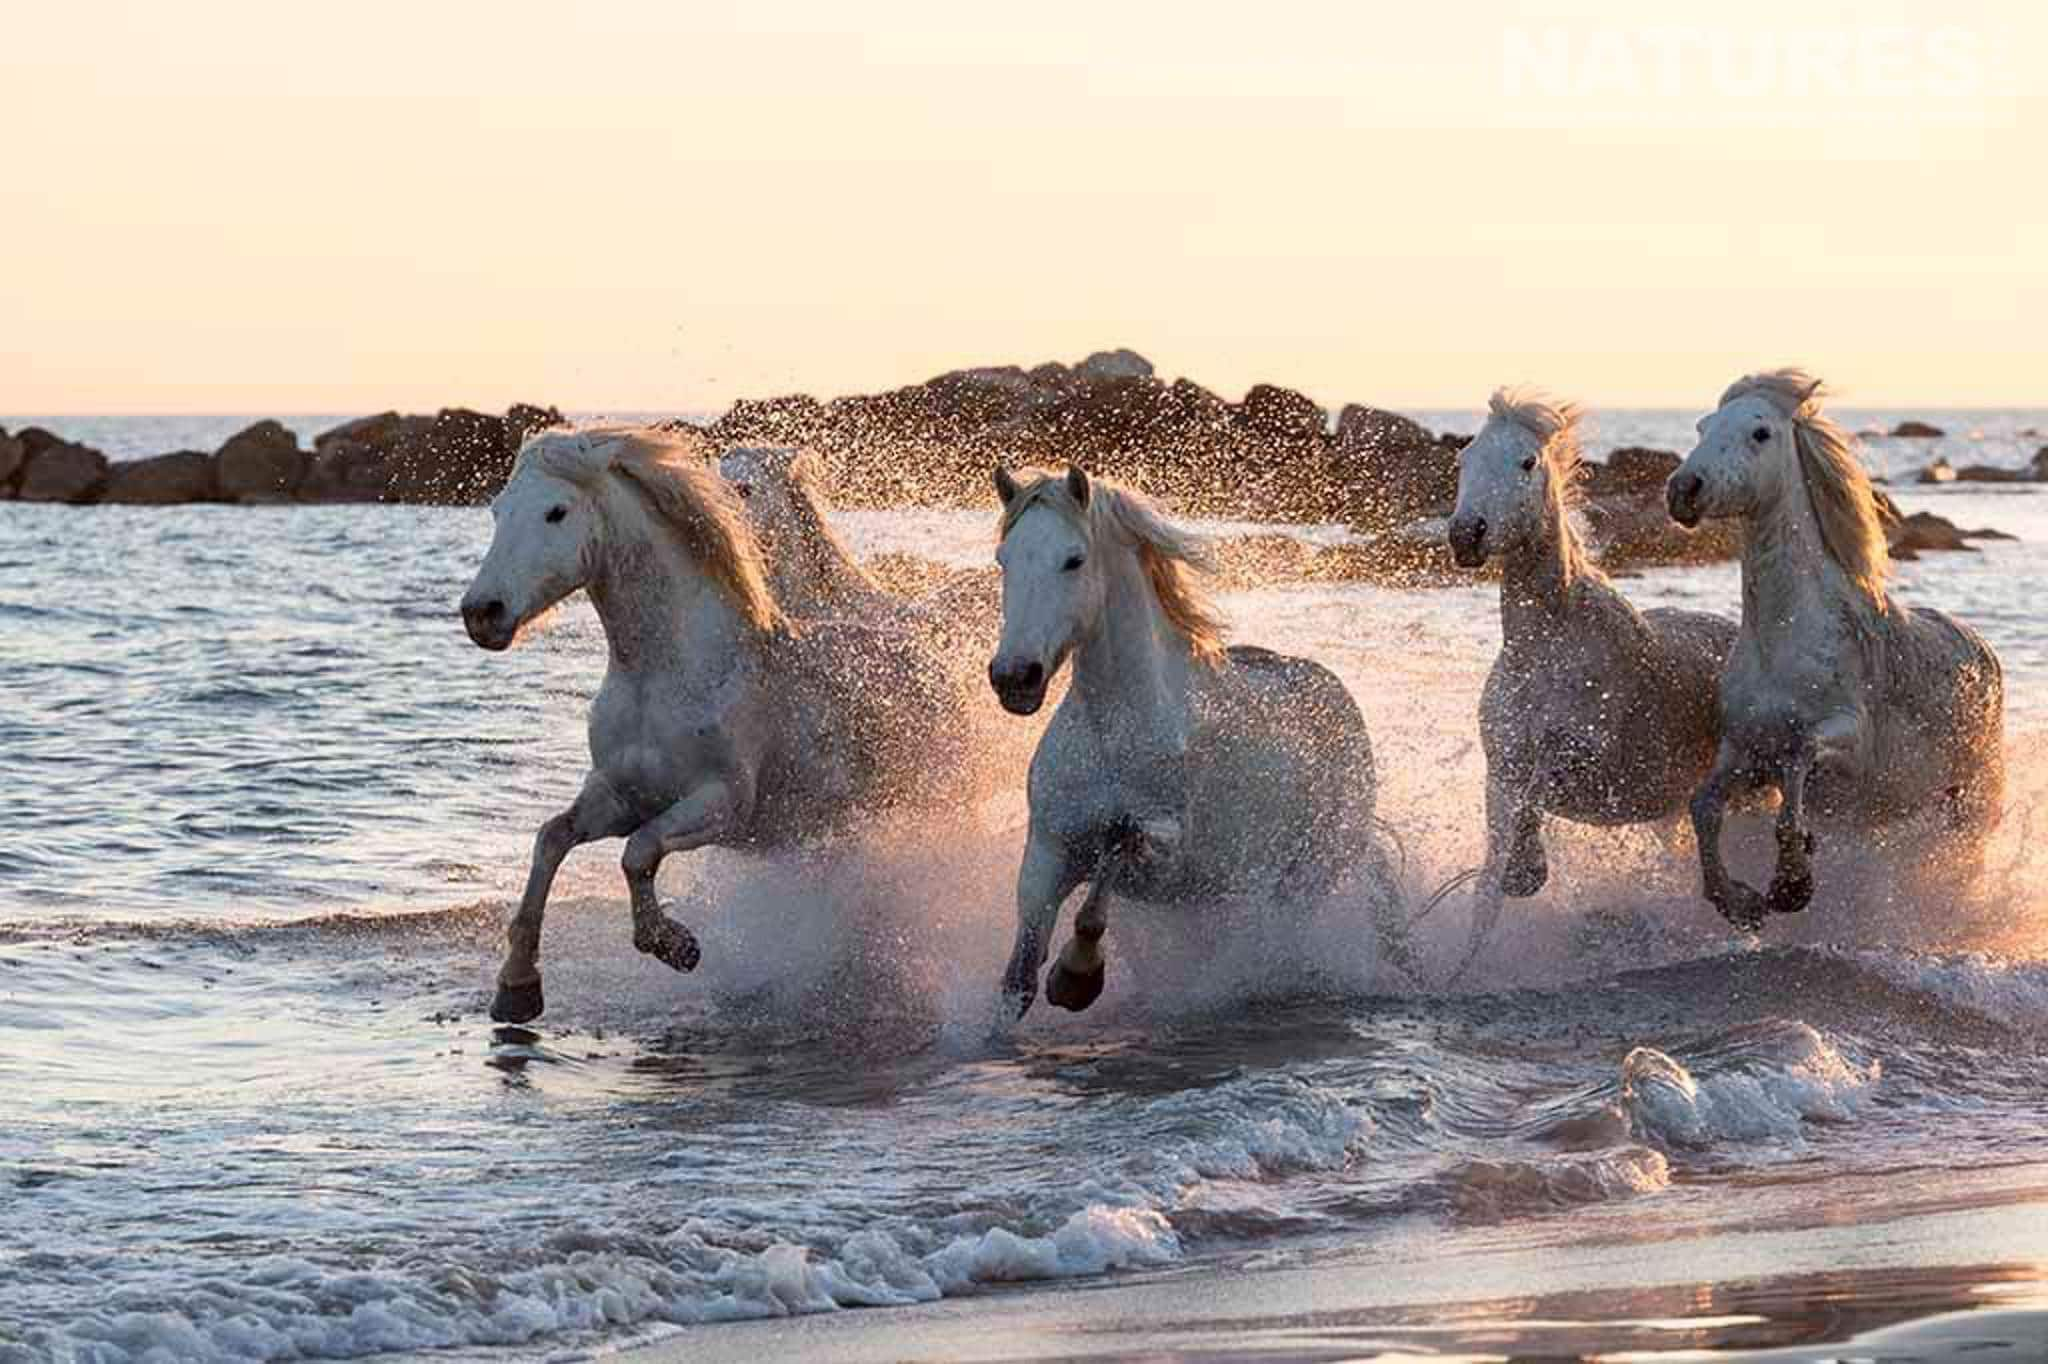 White horses running along the surf edge at sunset typical of the type of image that may be captured during the NaturesLens Wild White Horses of the Camargue Photography Holiday